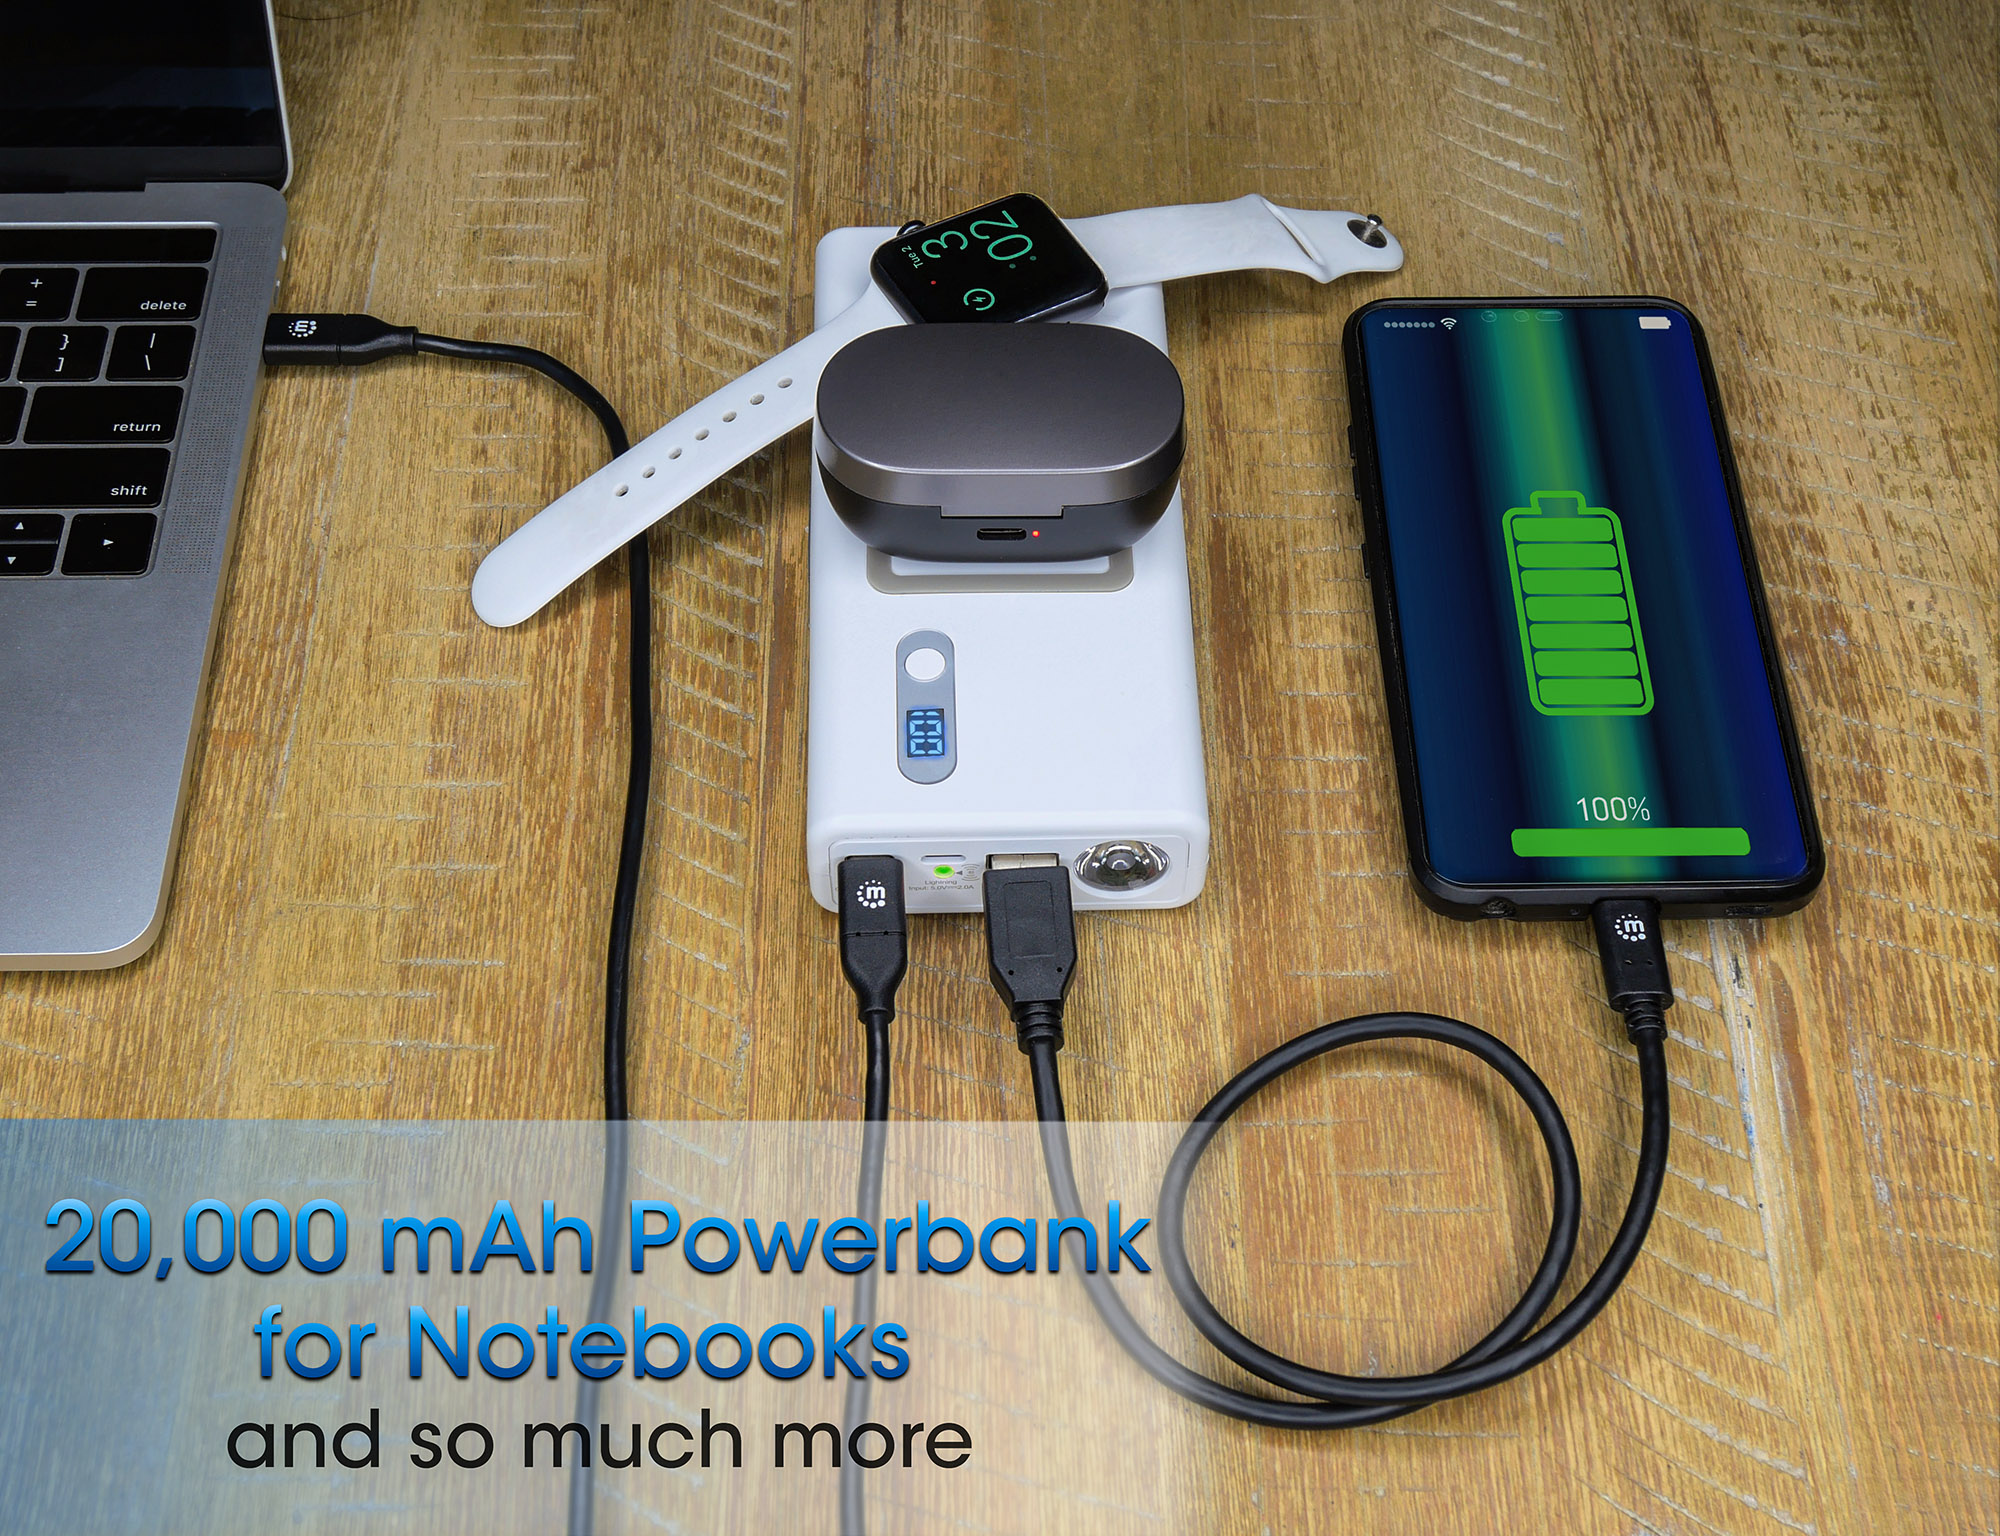 Powerbank 20,000 mAh with Power Delivery & Wireless Charging Pads